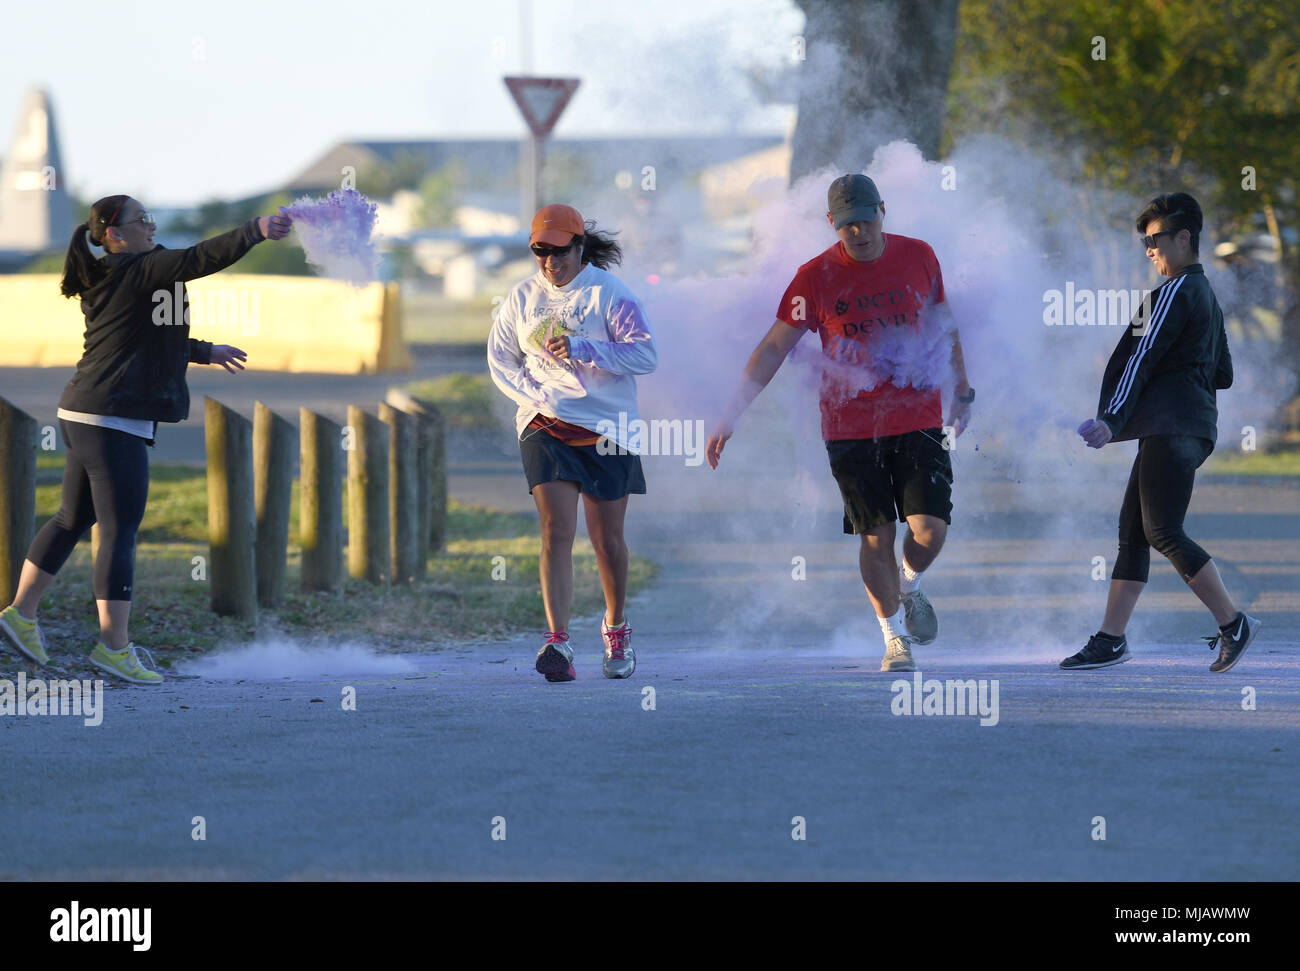 Keesler personnel participate in the Air Force Assistance Fund Color Run at Keesler Air Force Base, Mississippi, April 20, 2018. The AFAF raises funds for charitable affiliates that provide support to Air Force families in need. (U.S. Air Force photo by Kemberly Groue) - Stock Image